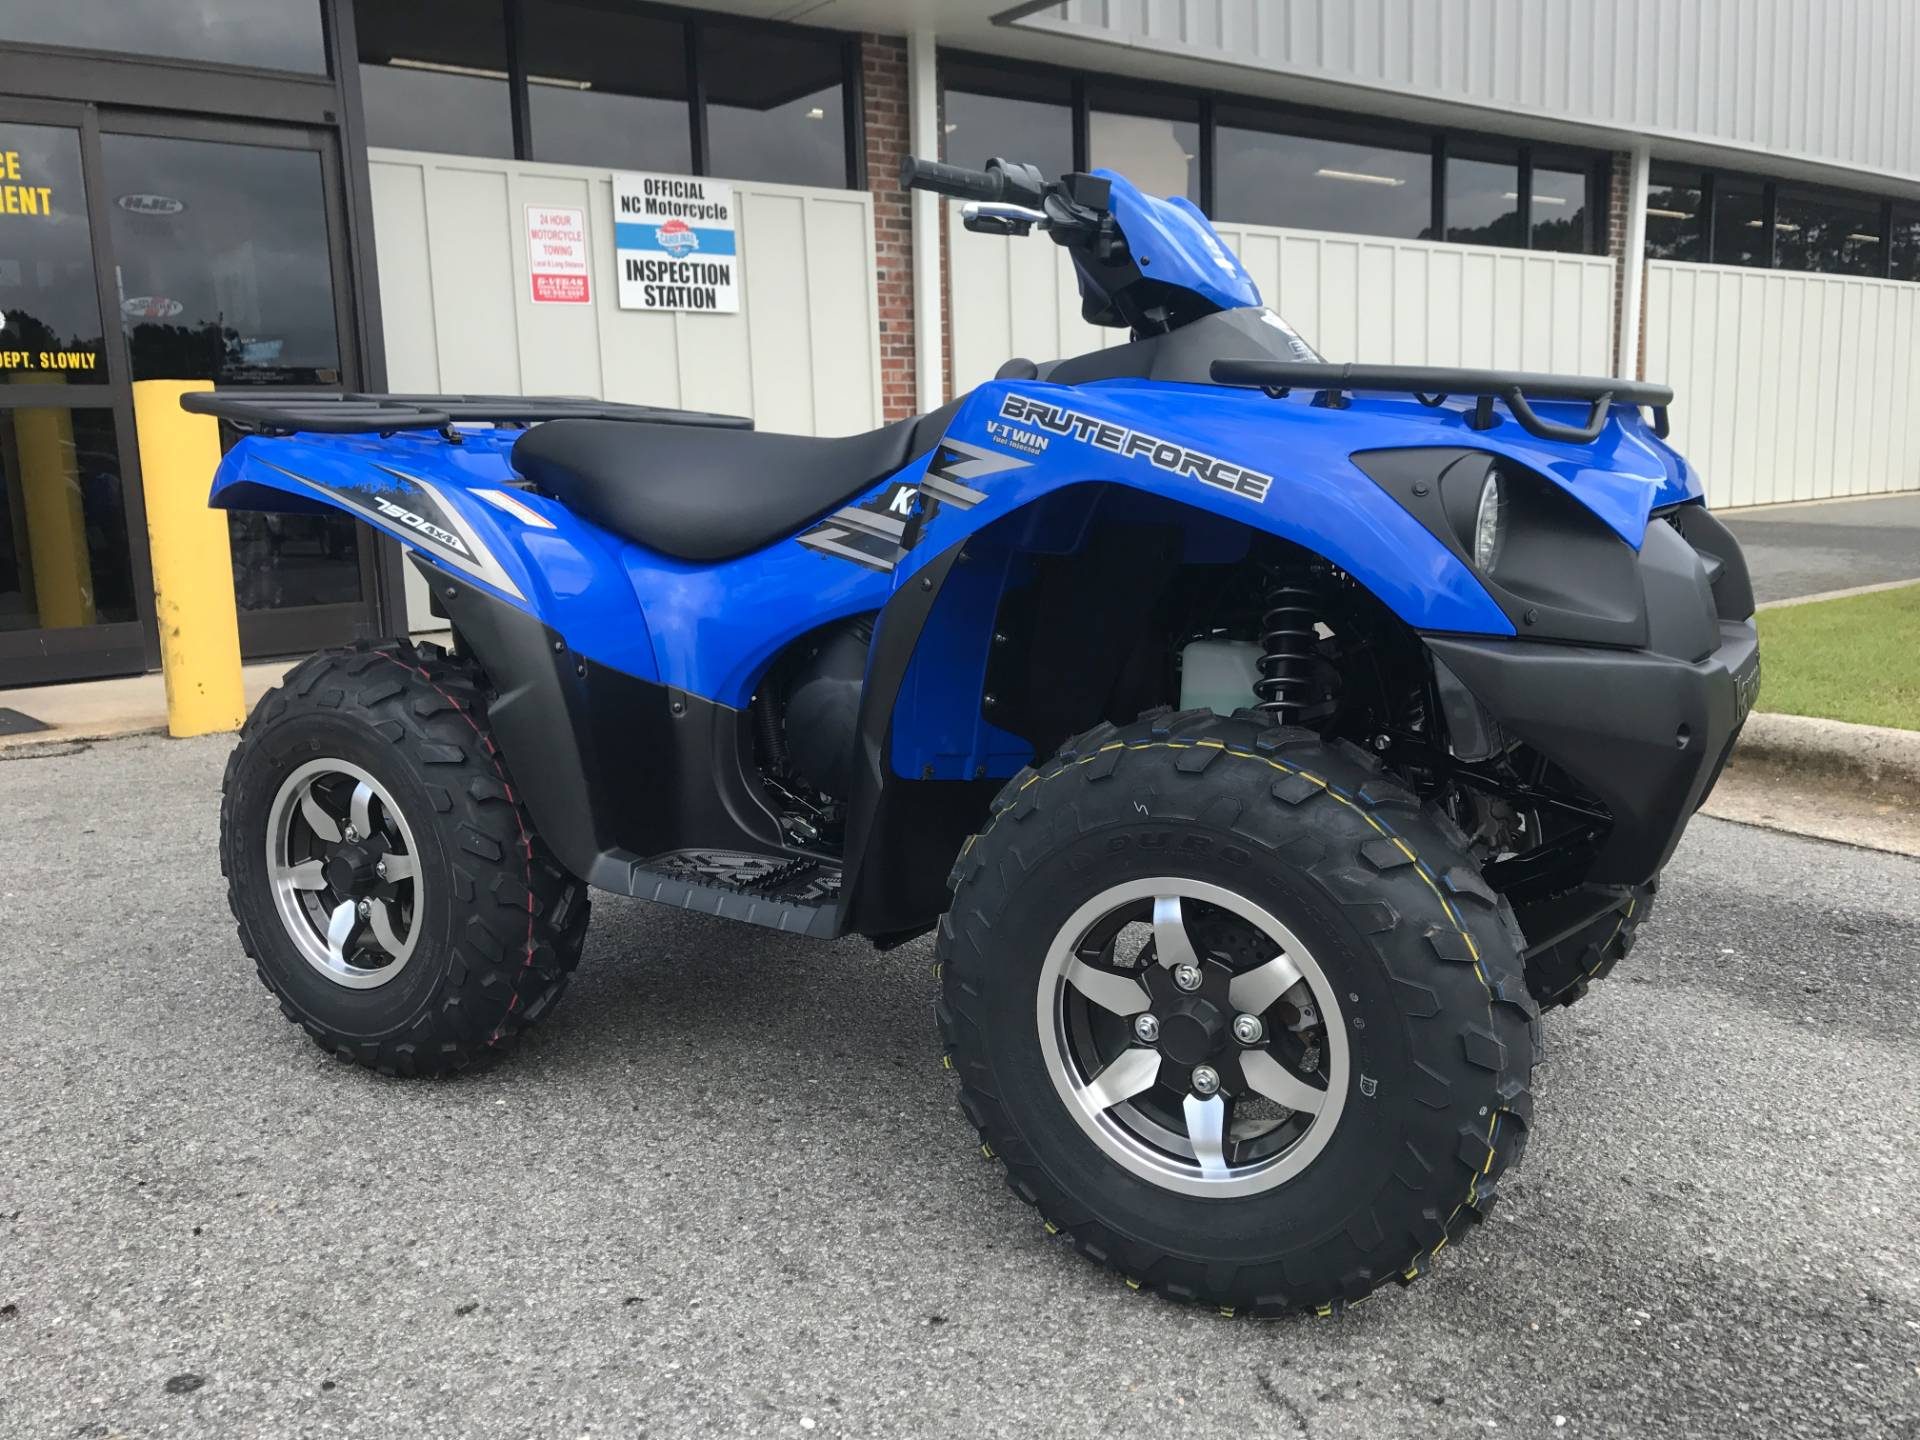 2018 Kawasaki Brute Force 750 4x4i EPS in Greenville, North Carolina - Photo 2